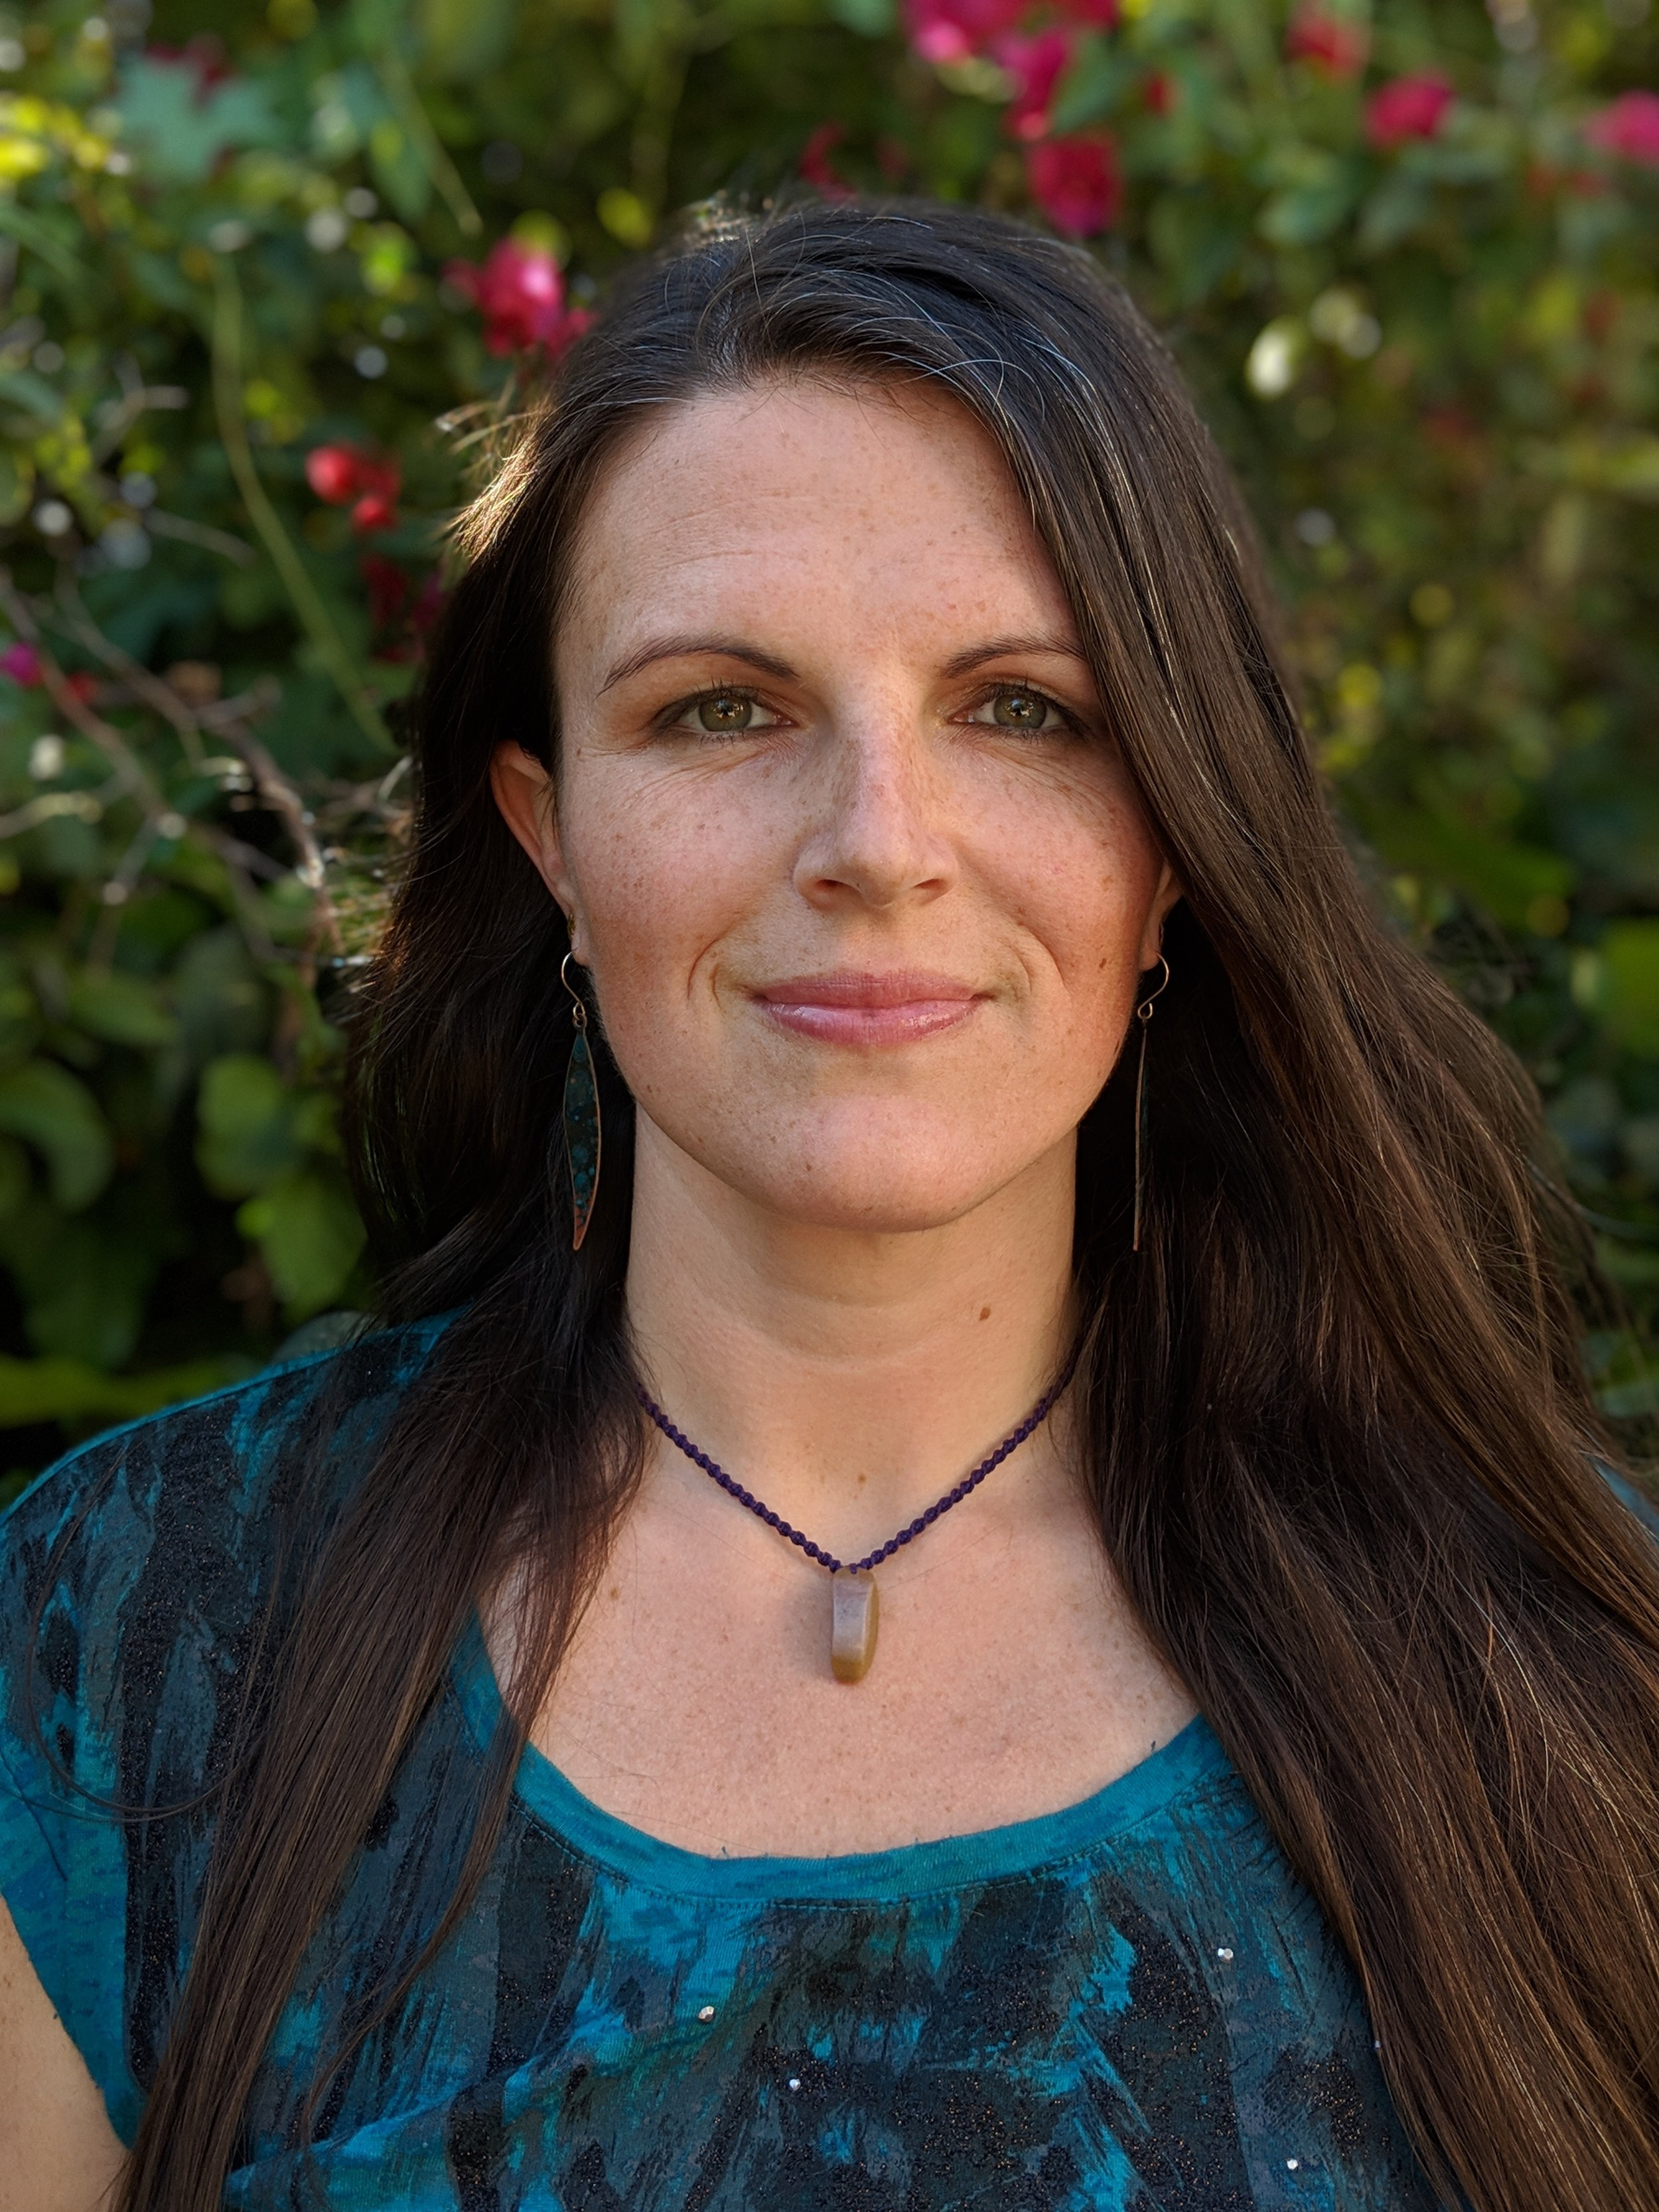 Michelle Hawk Healer Lightworker Training Mentor Shaman Alchemist Portland